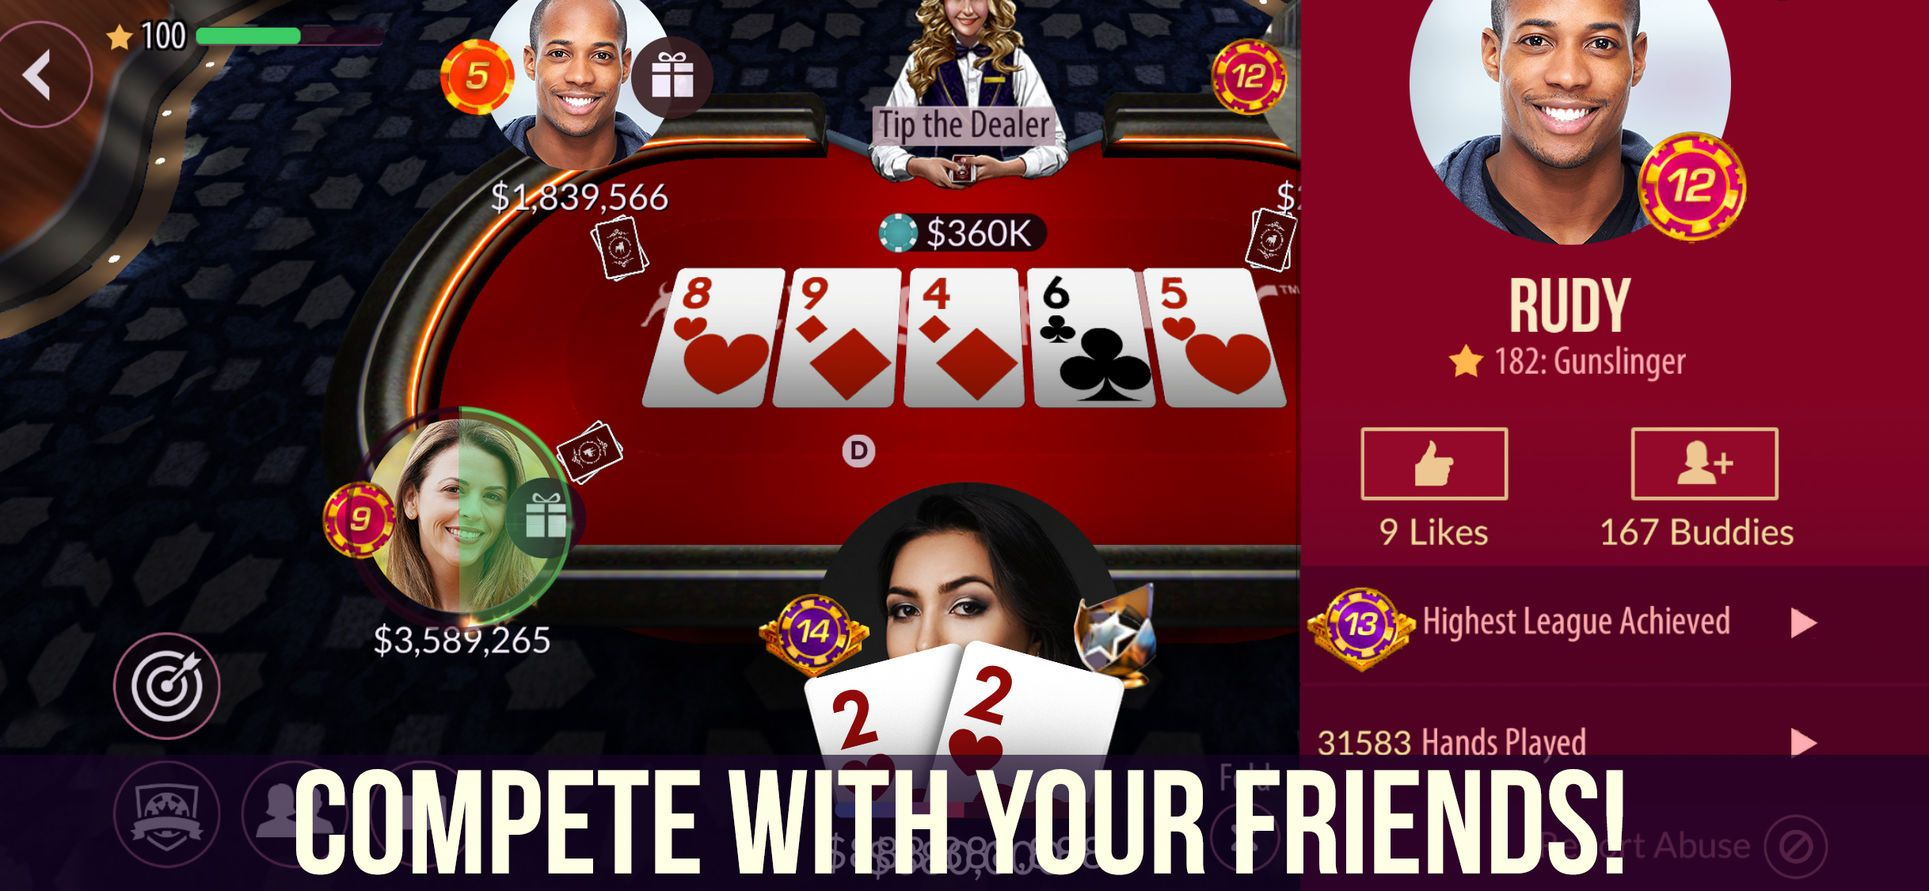 ‎Zynga Poker Texas Holdem on the App Store (With images